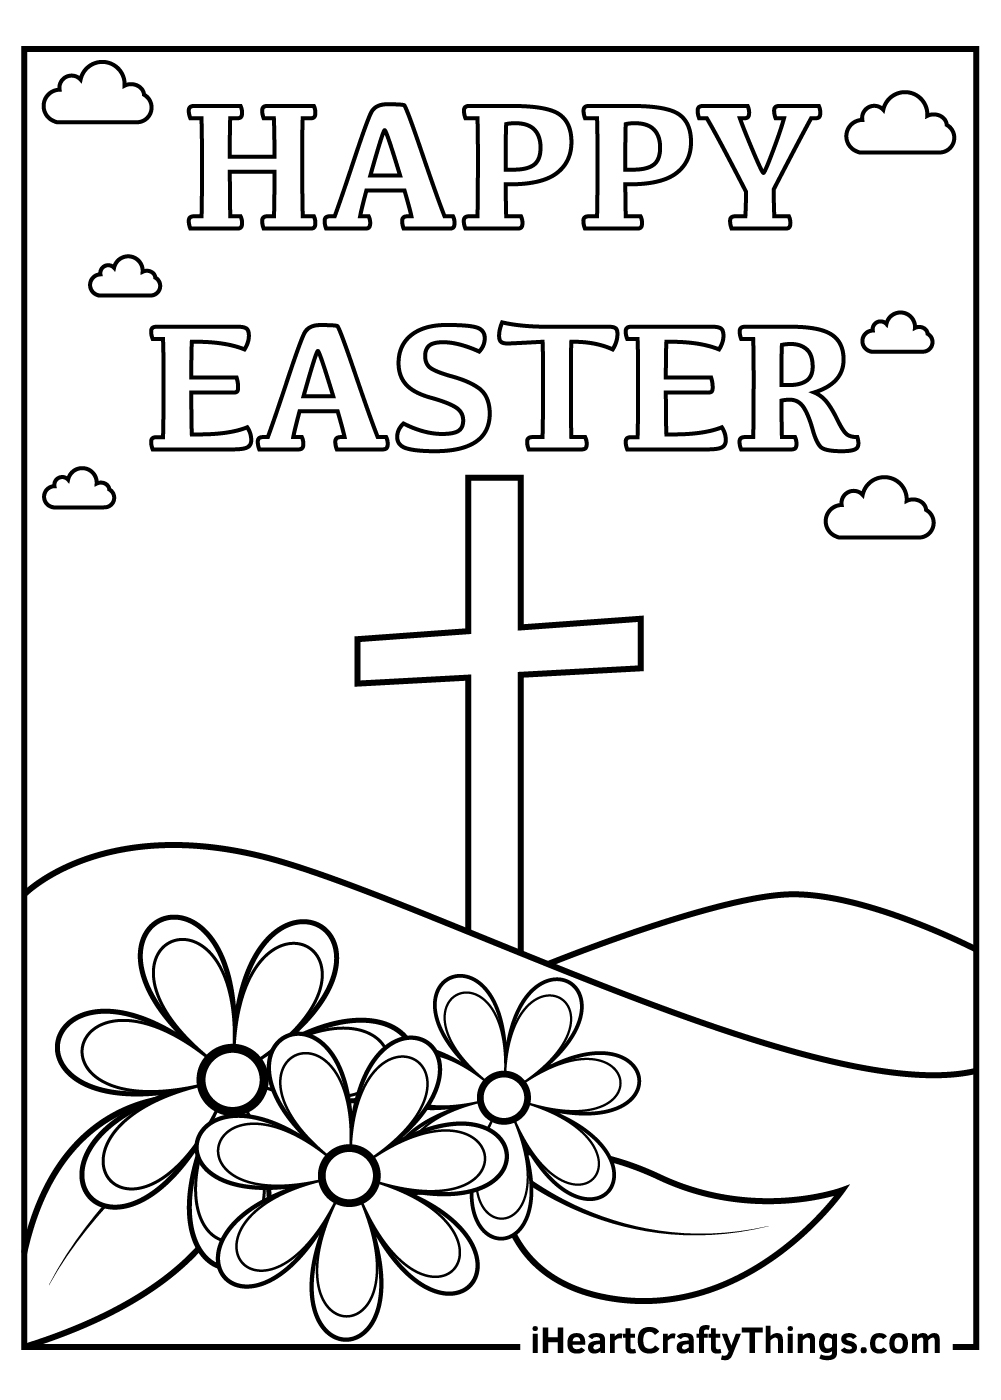 Printable Religious Easter Coloring Pages Updated 2021